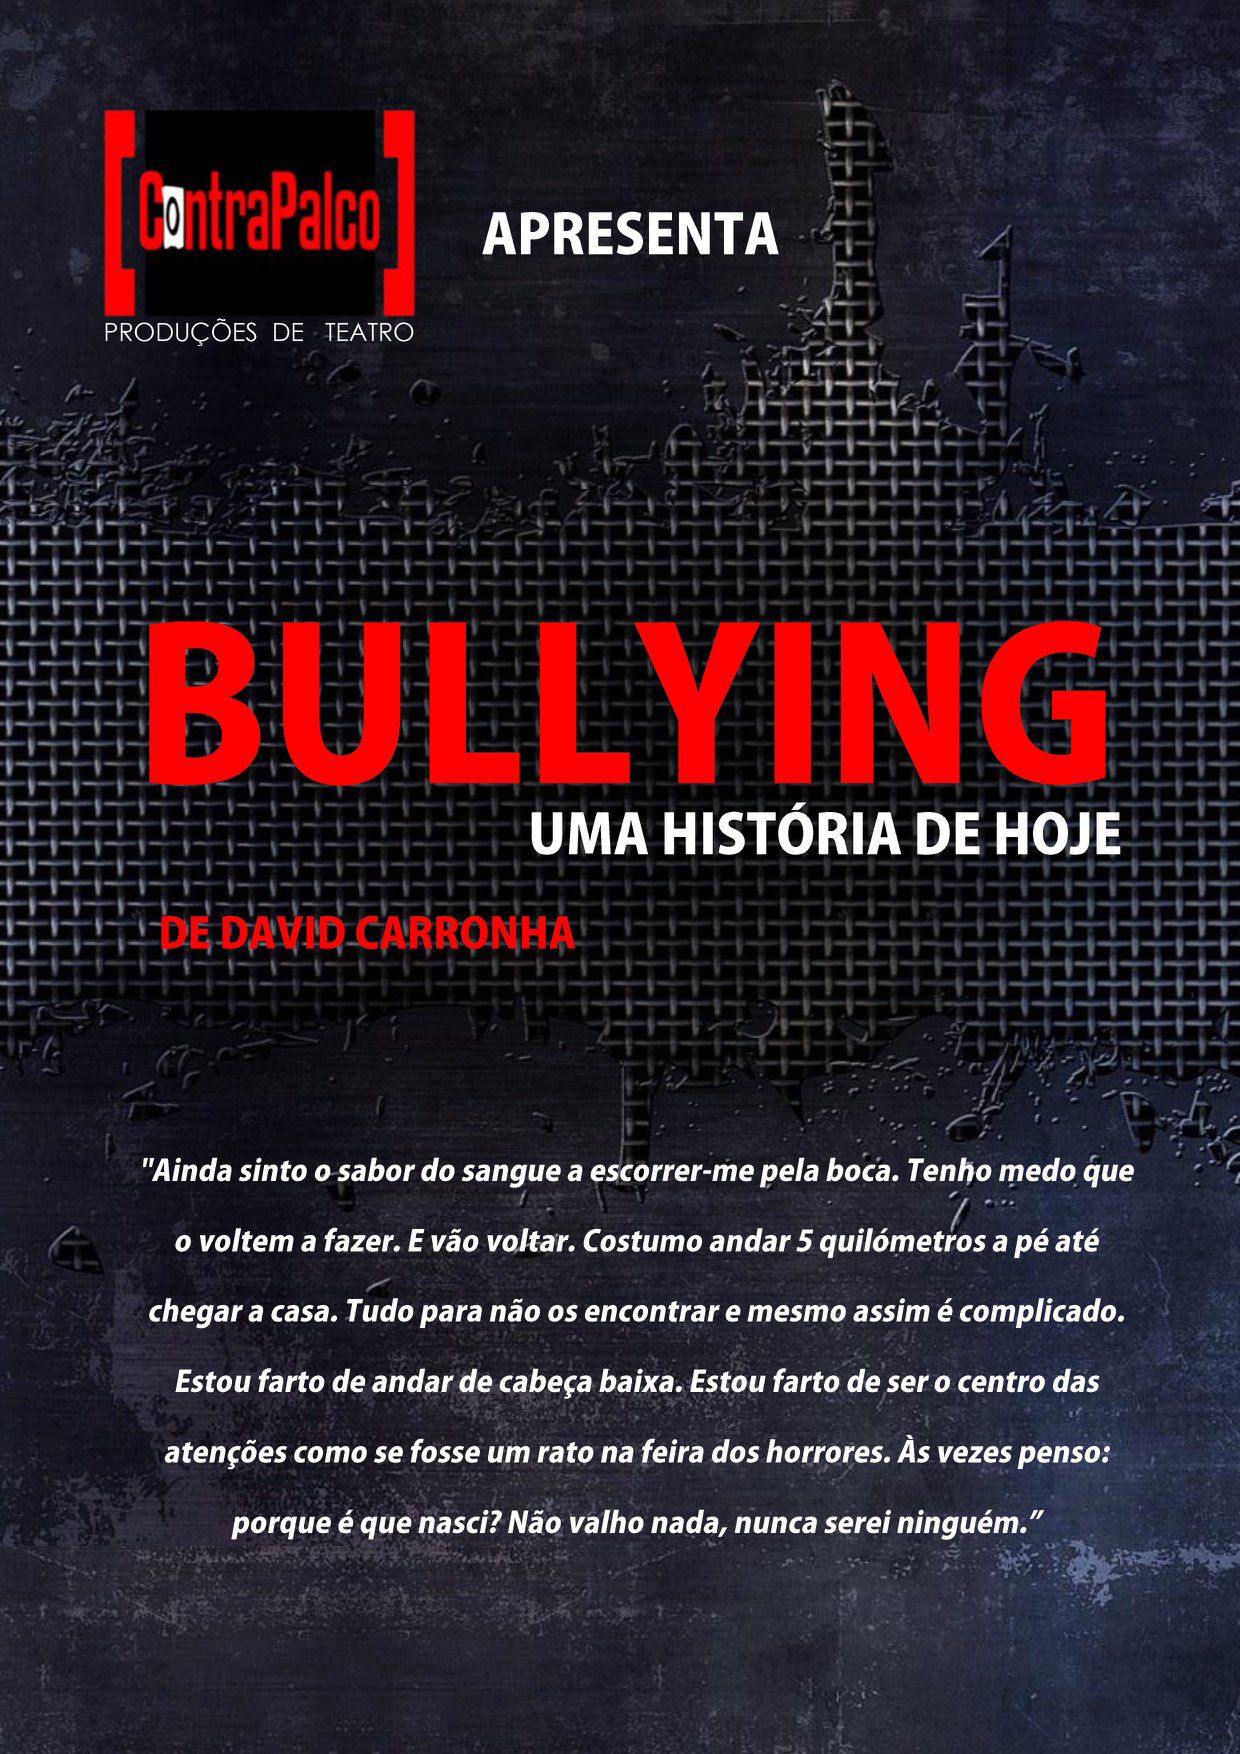 theater-bullying-a-story-of-today